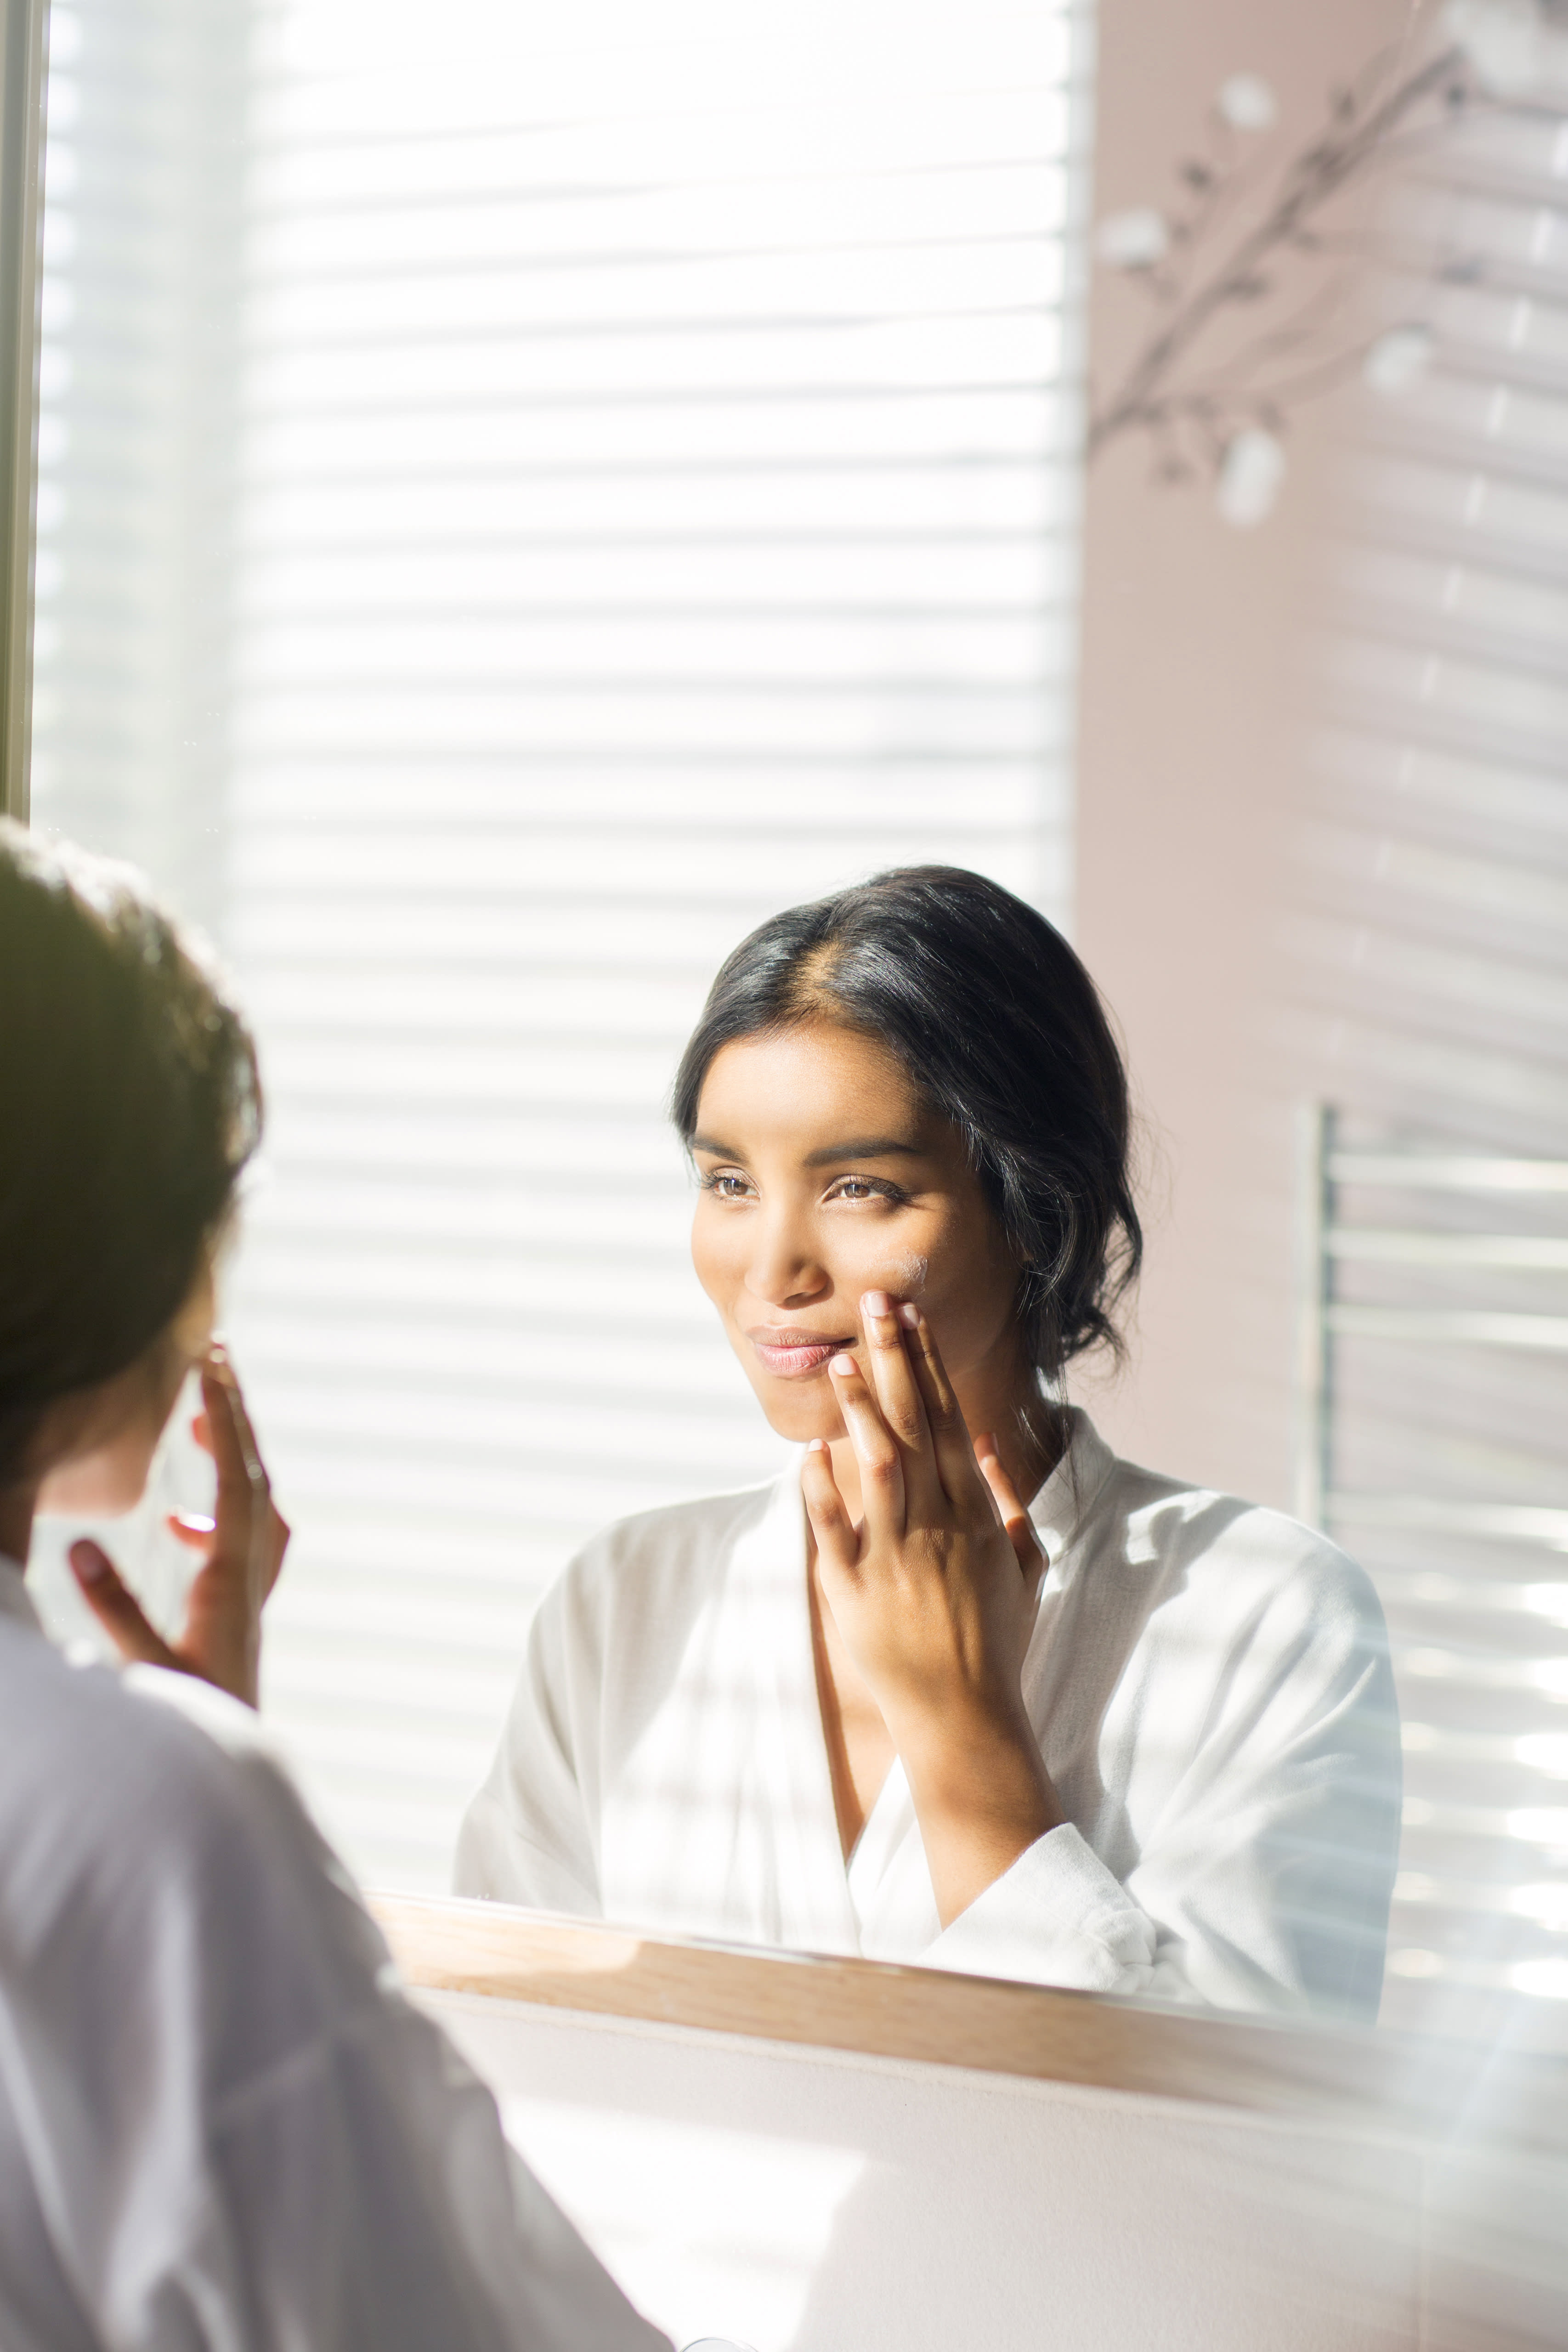 Woman's reflection in bathroom mirror applying skincare product.